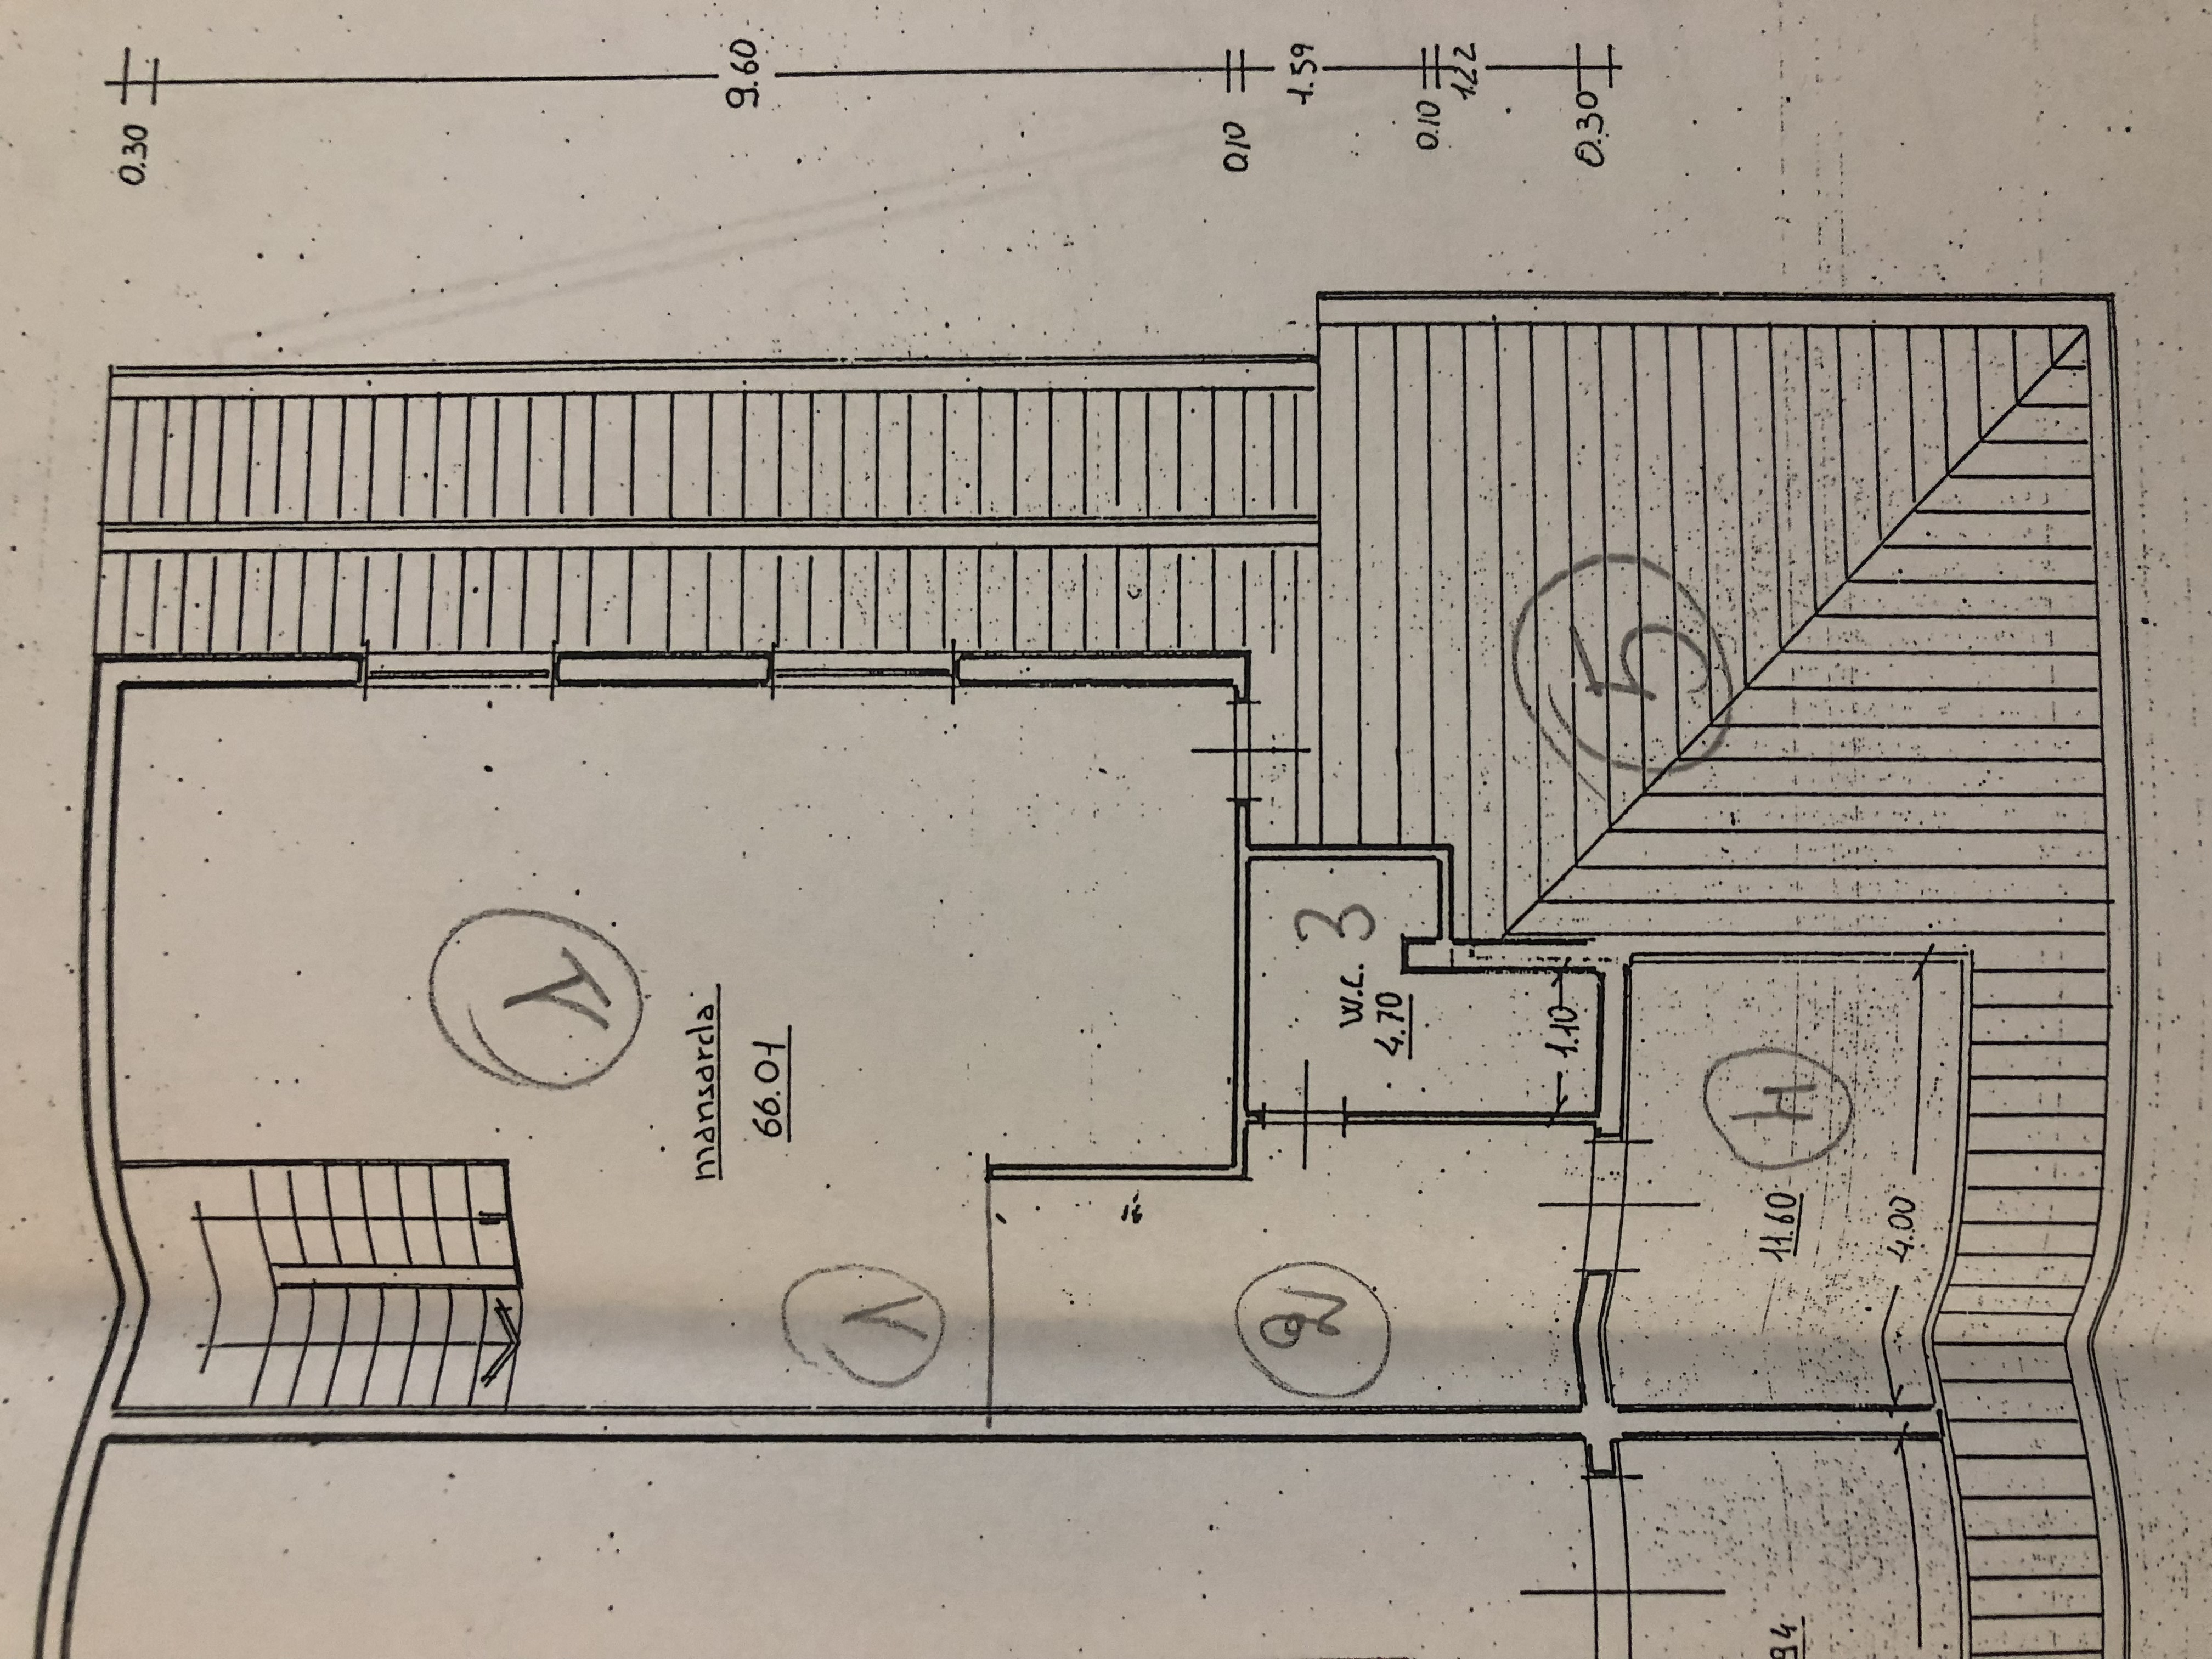 Plan 2/4 for ref. F/0162